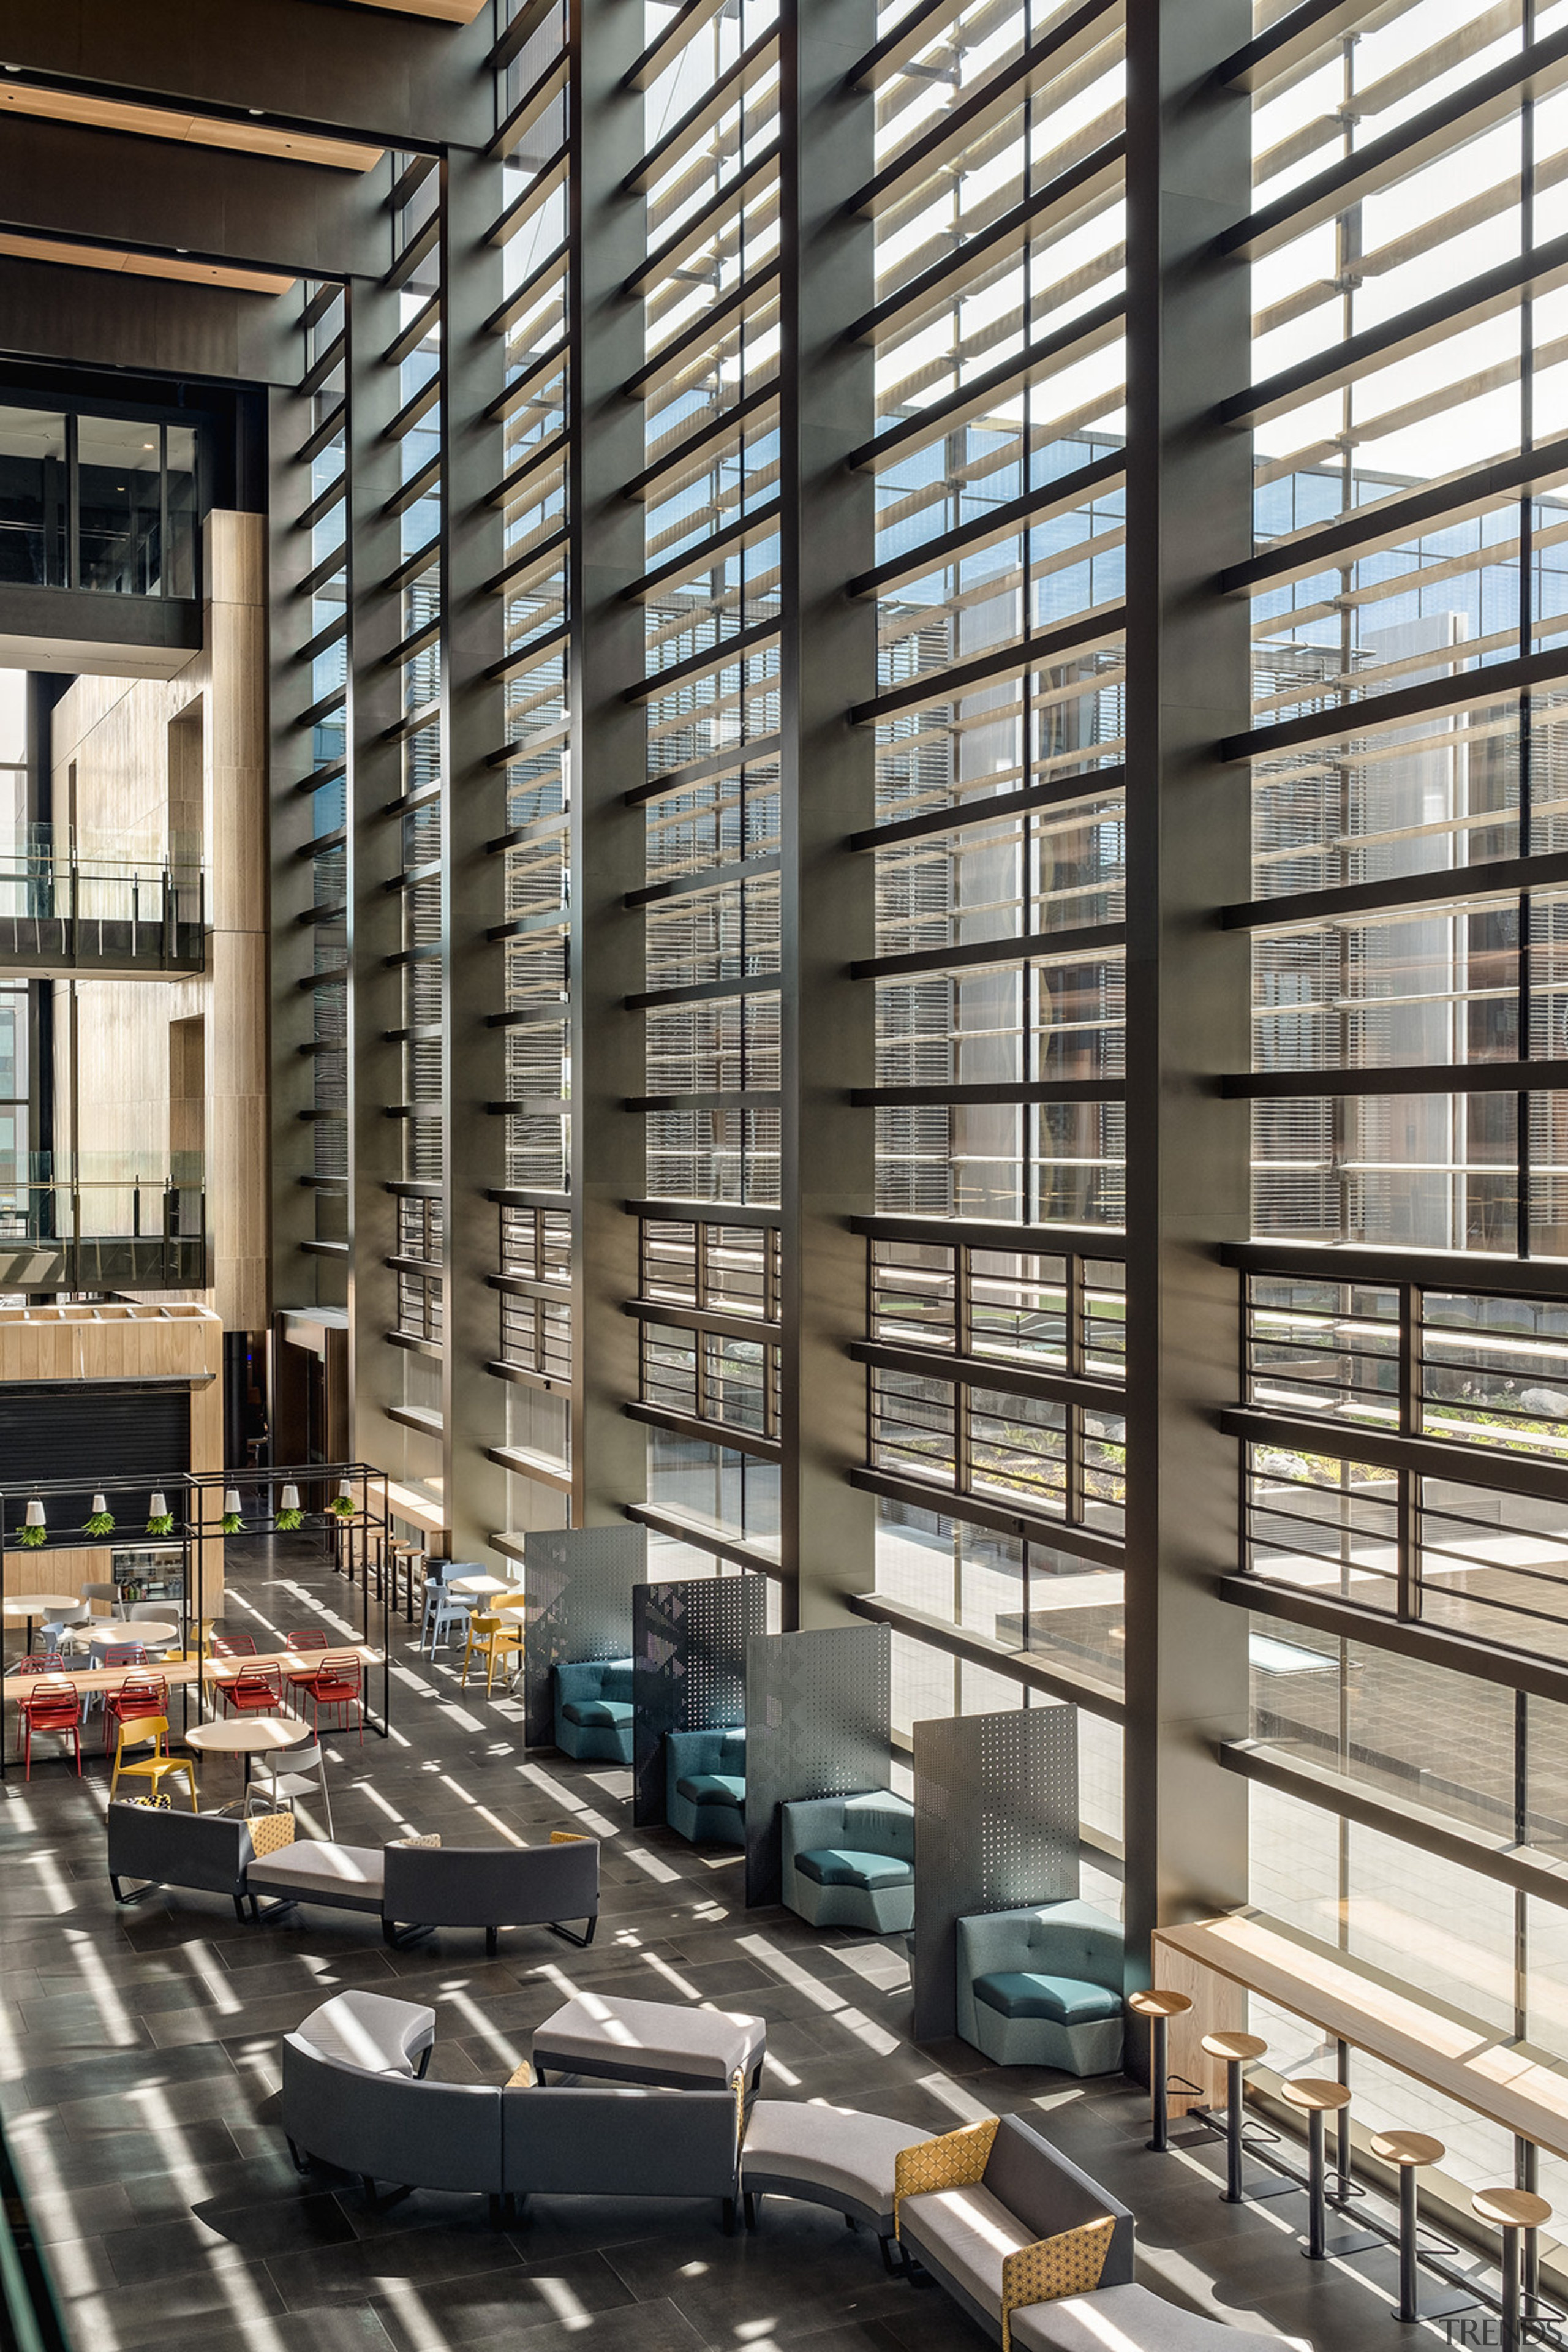 The glass-walled atrium in the Courts Building at architecture, building, condominium, facade, glass, window, black, gray